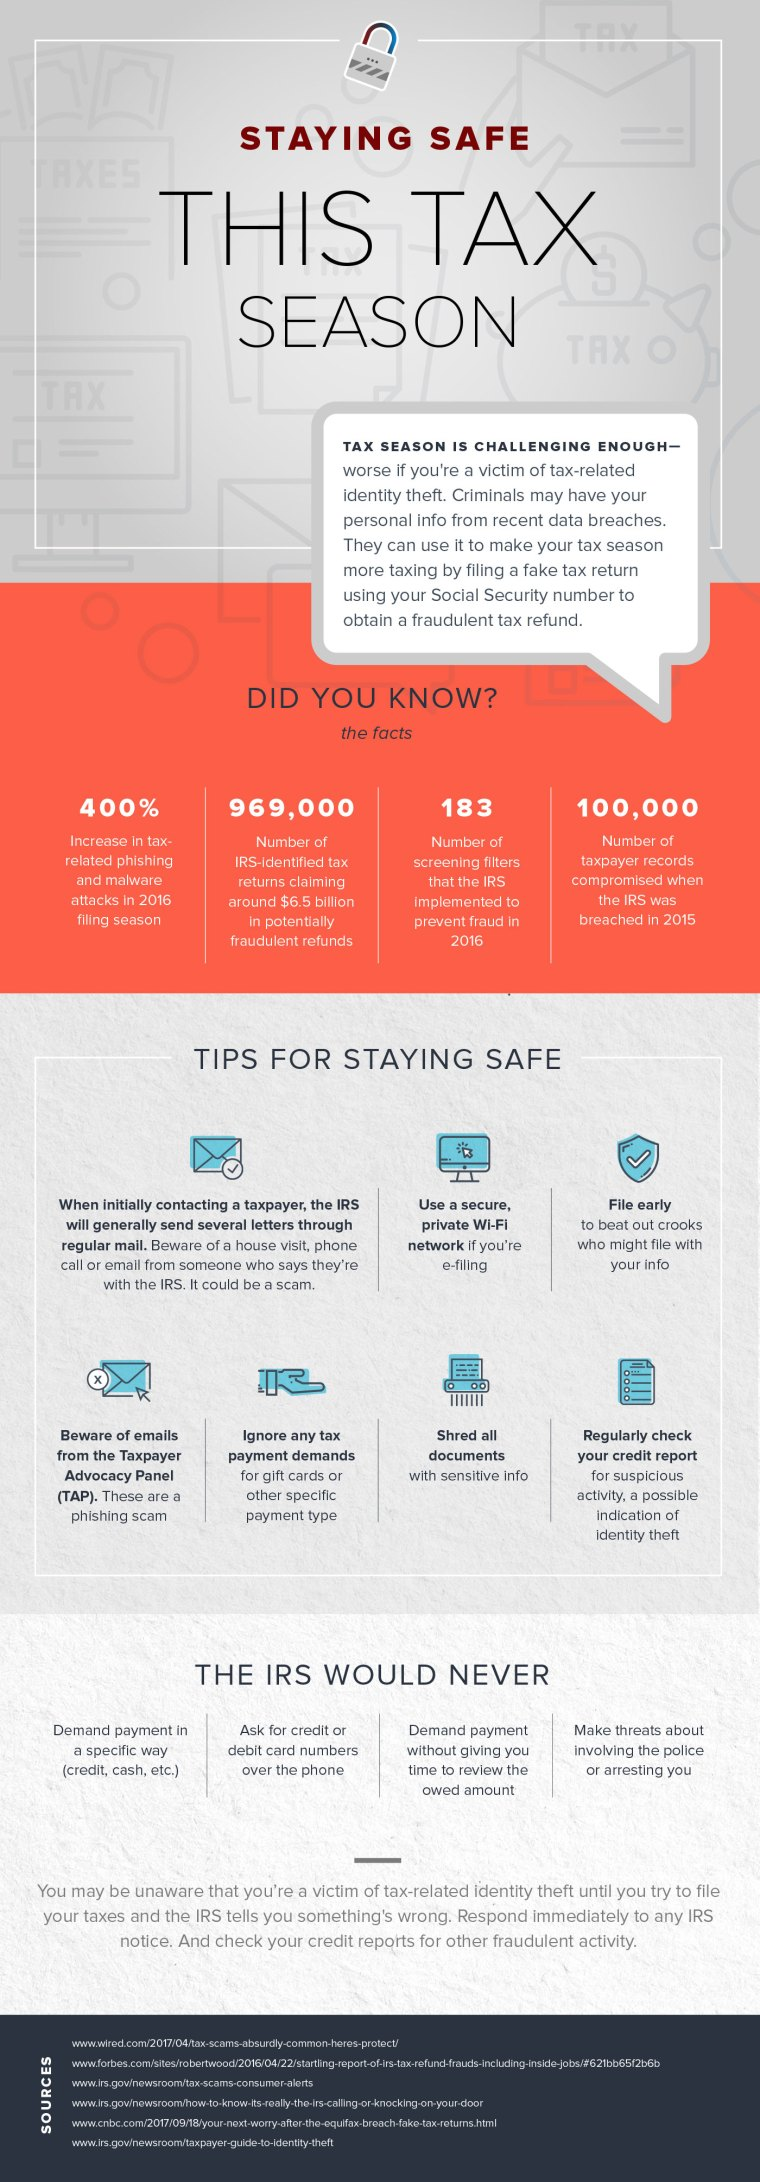 Staying safe during the tax season - infographic